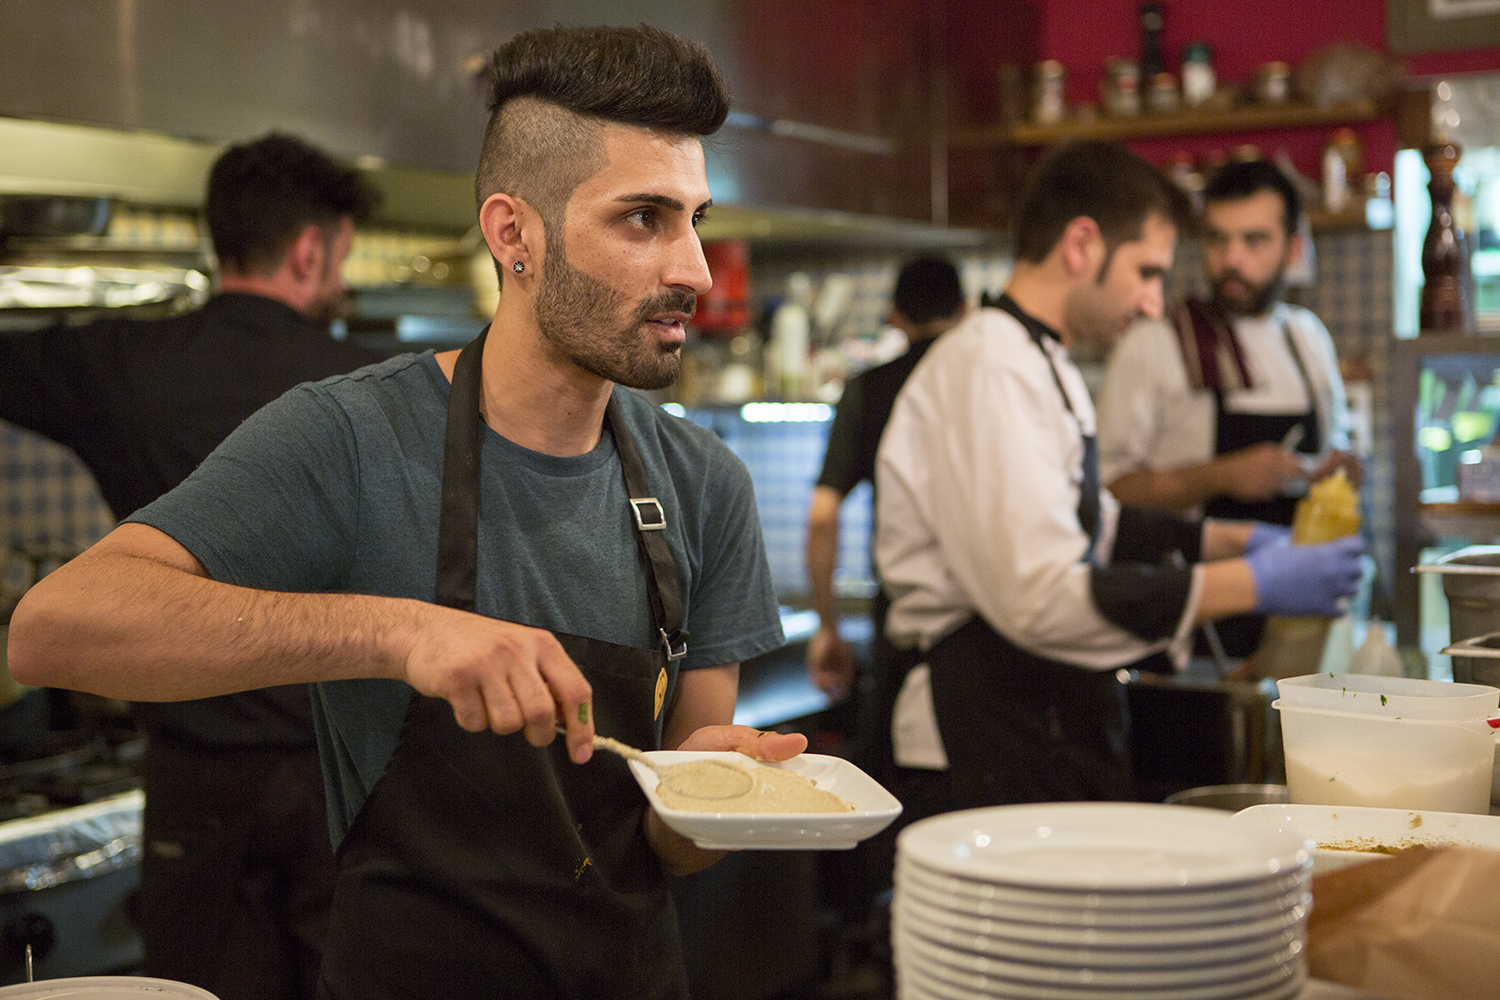 Syrian cook, Barshank Haj Younes, is preparing his dishes in the kitchen of a crowded restaurant in central Athens.